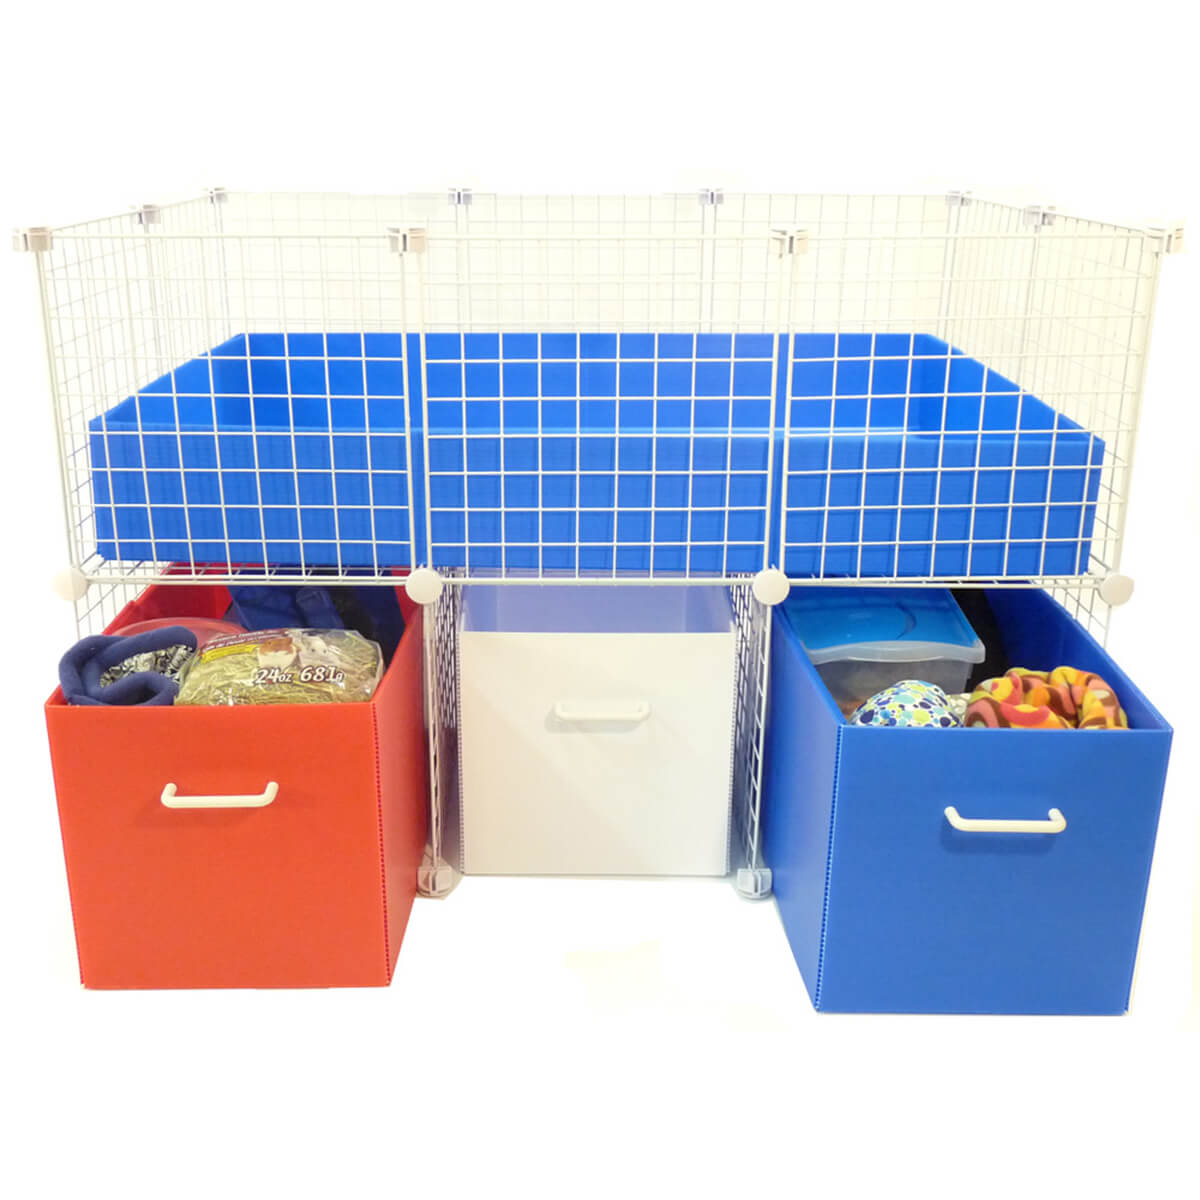 Small Cubby Bin System with bins open